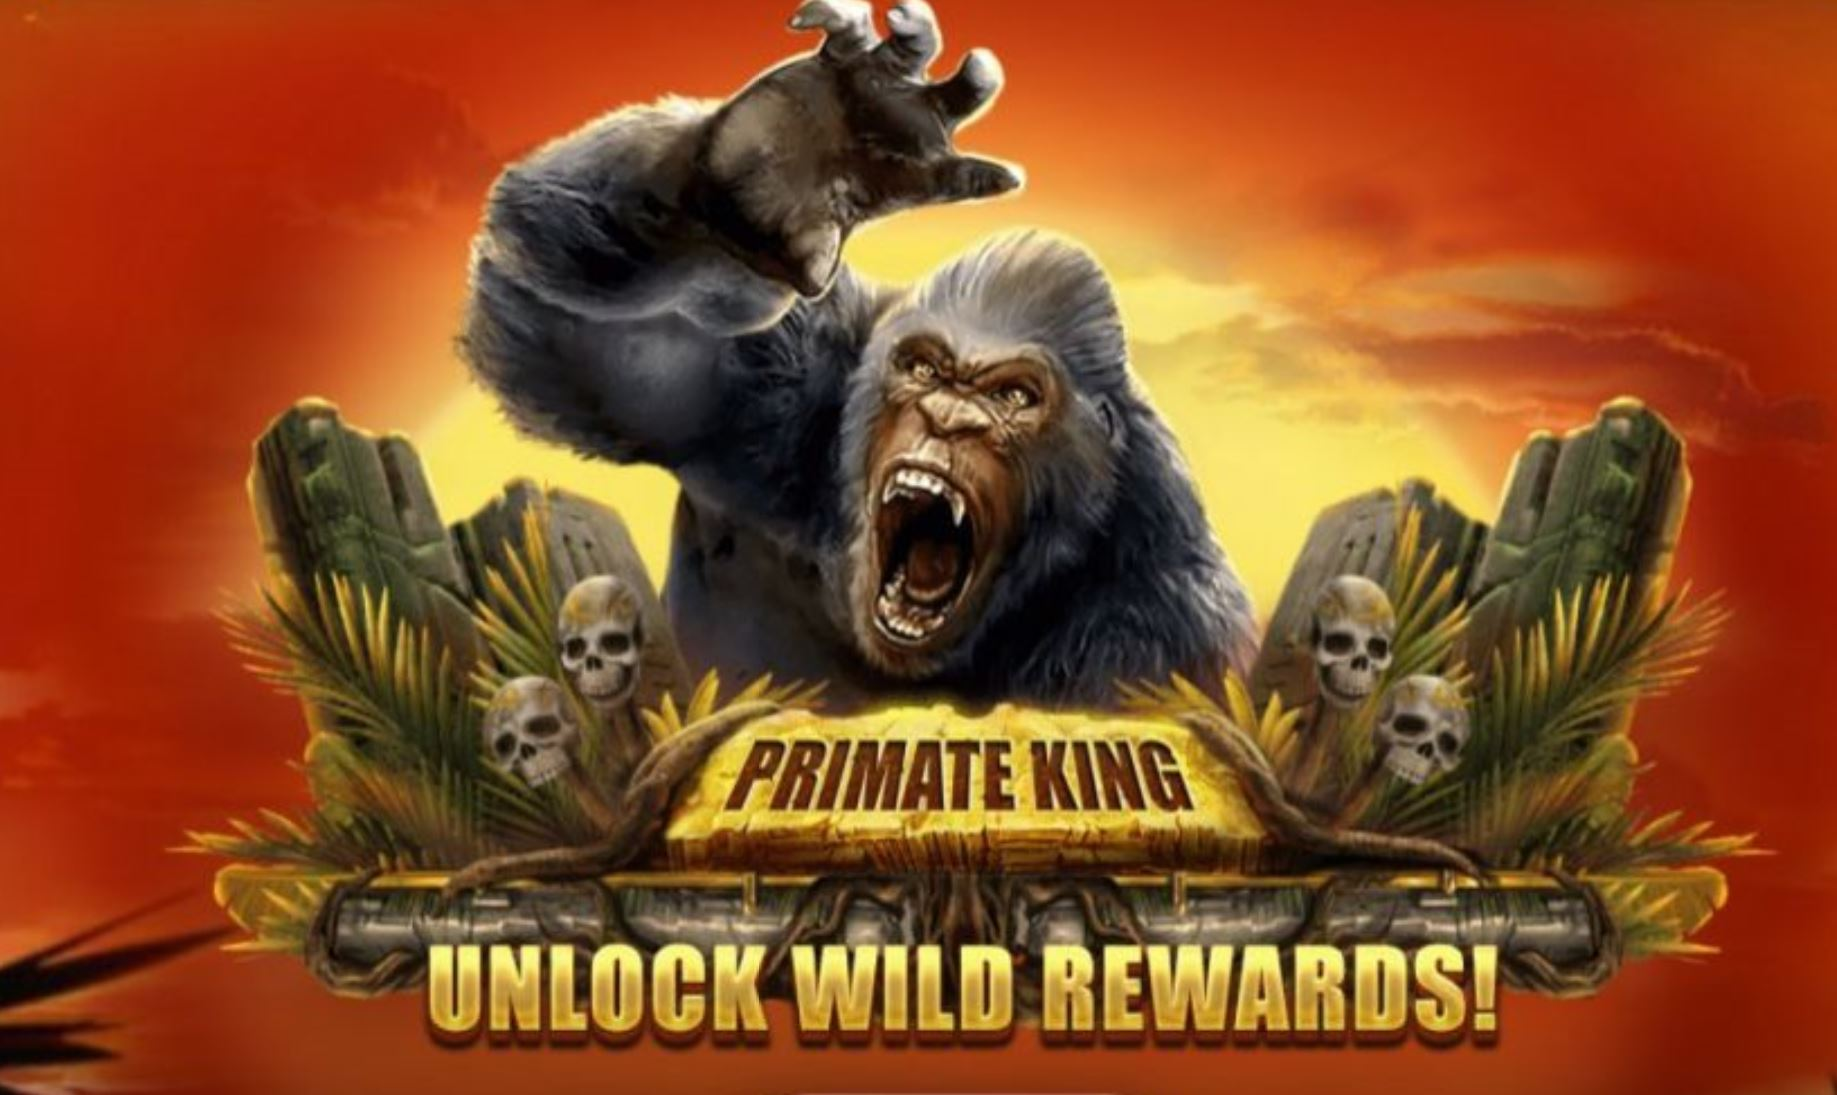 Primate King game review